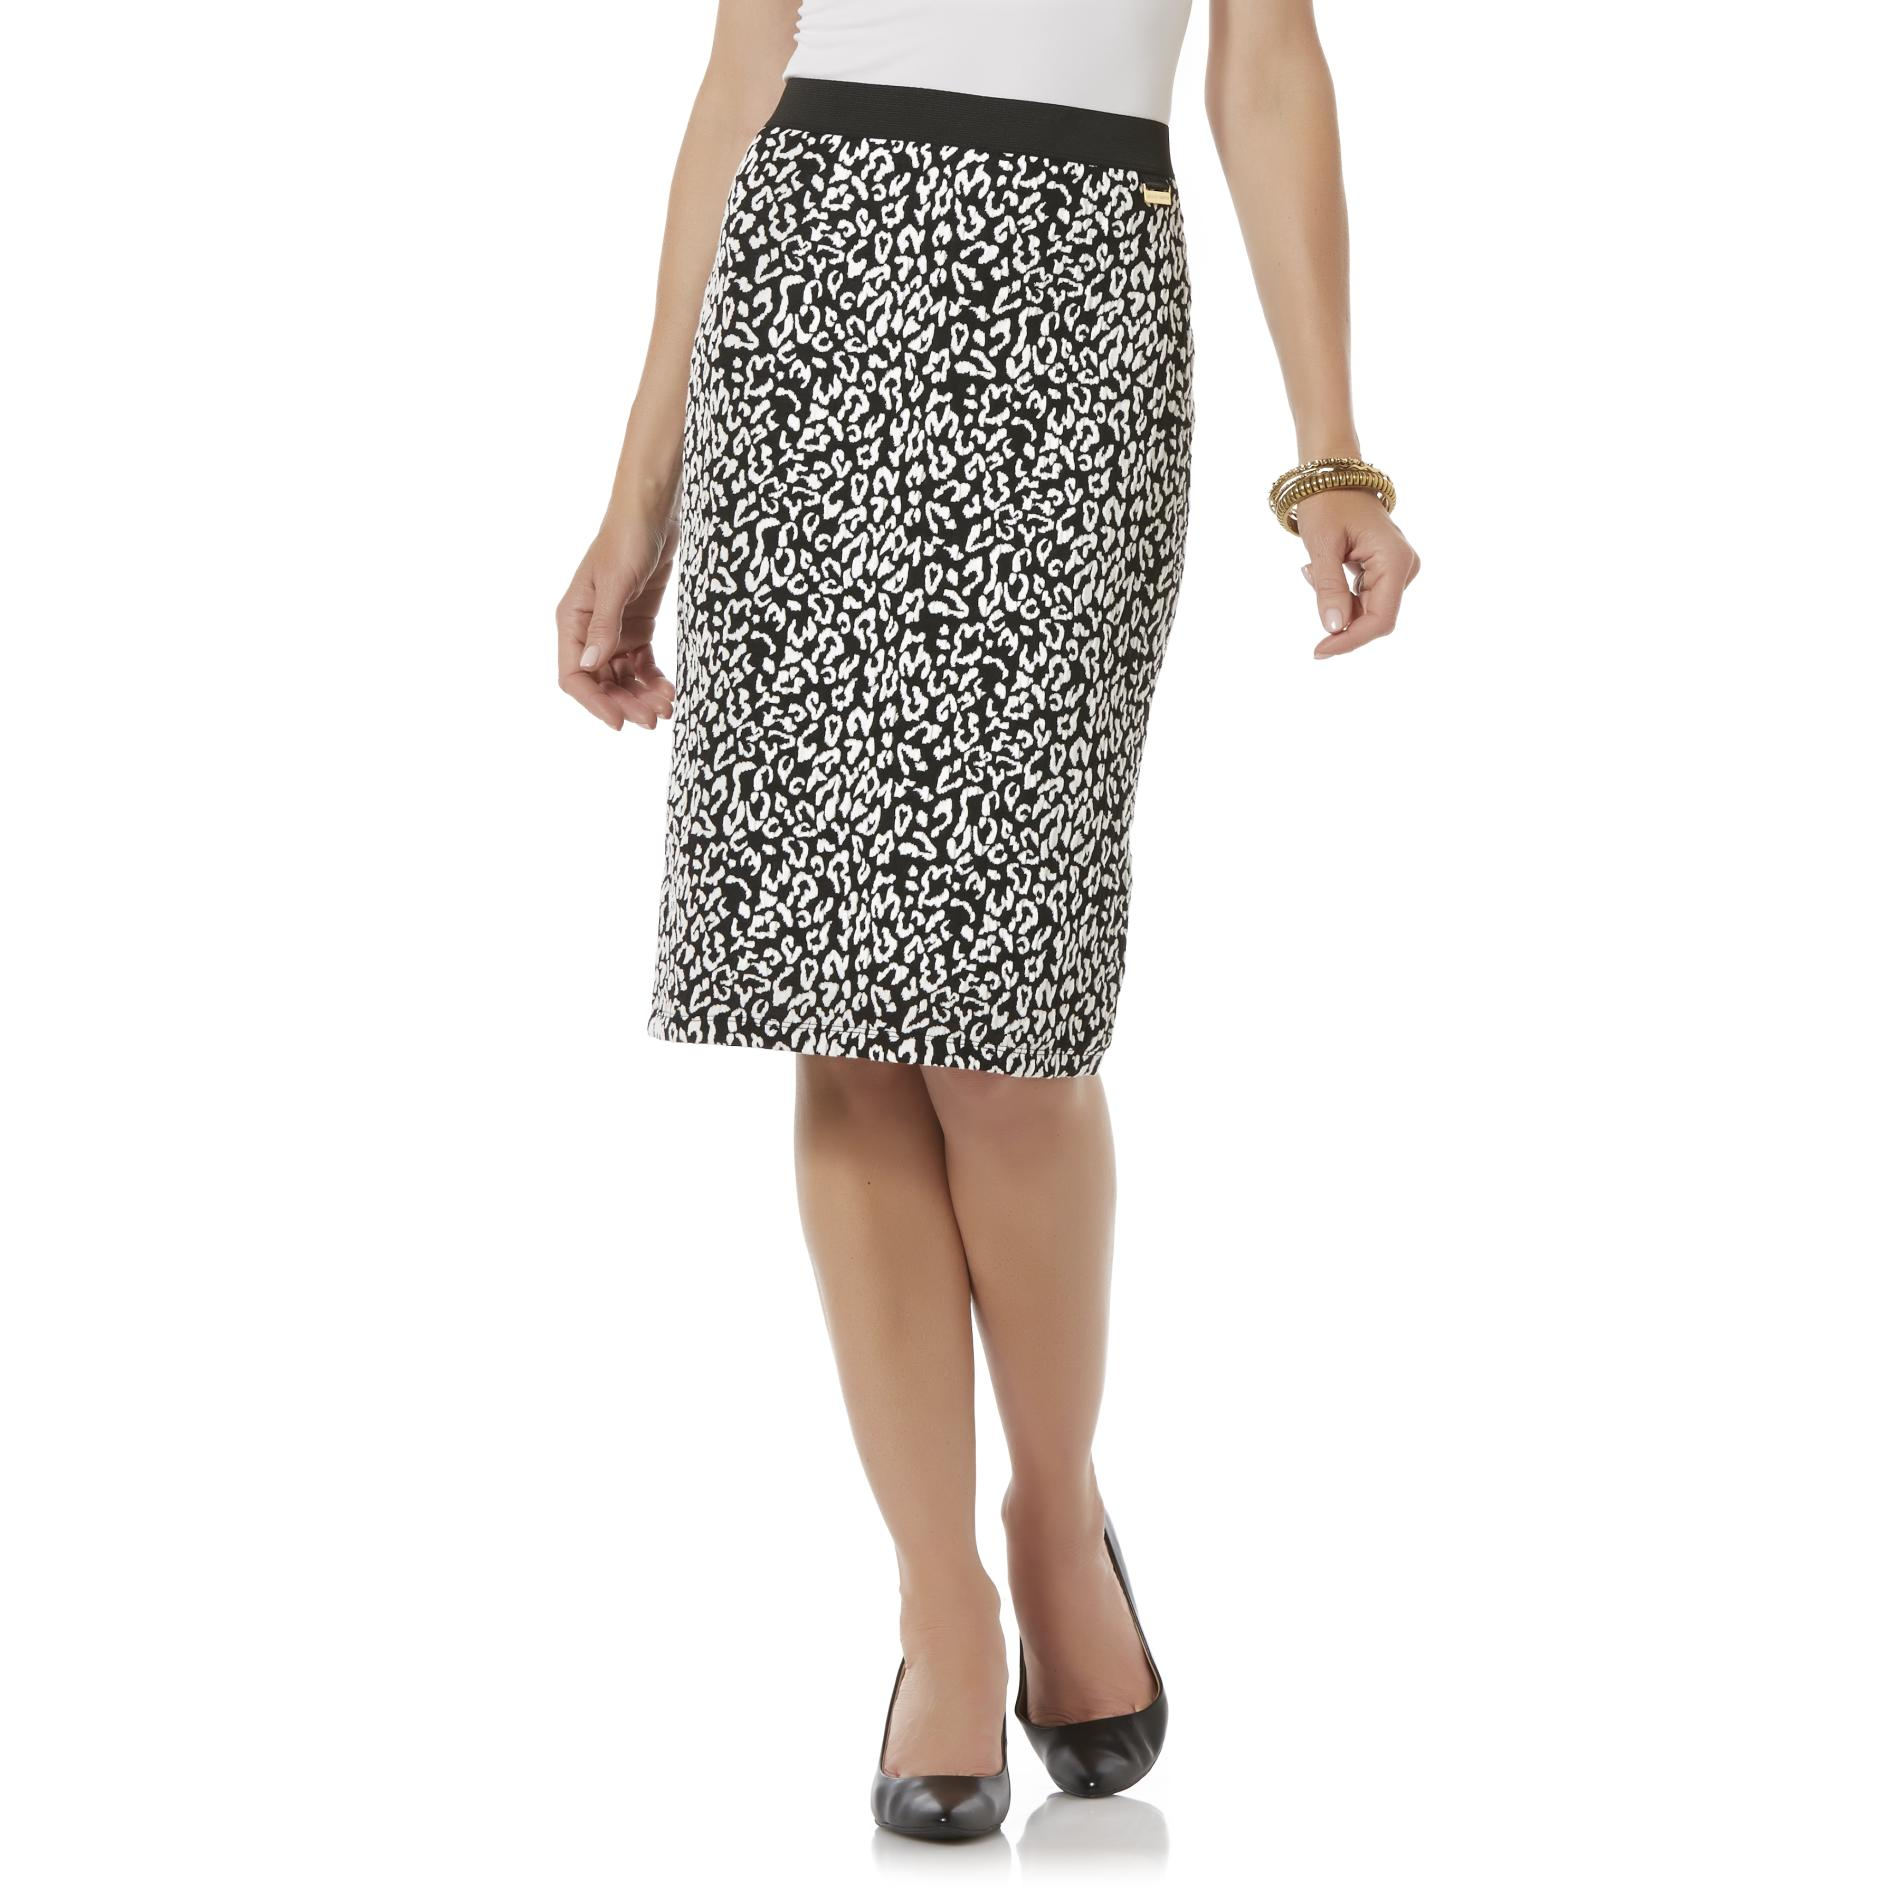 School Skirts Kmart Jaclyn Smith Women 39s Pencil Skirt Leopard Print